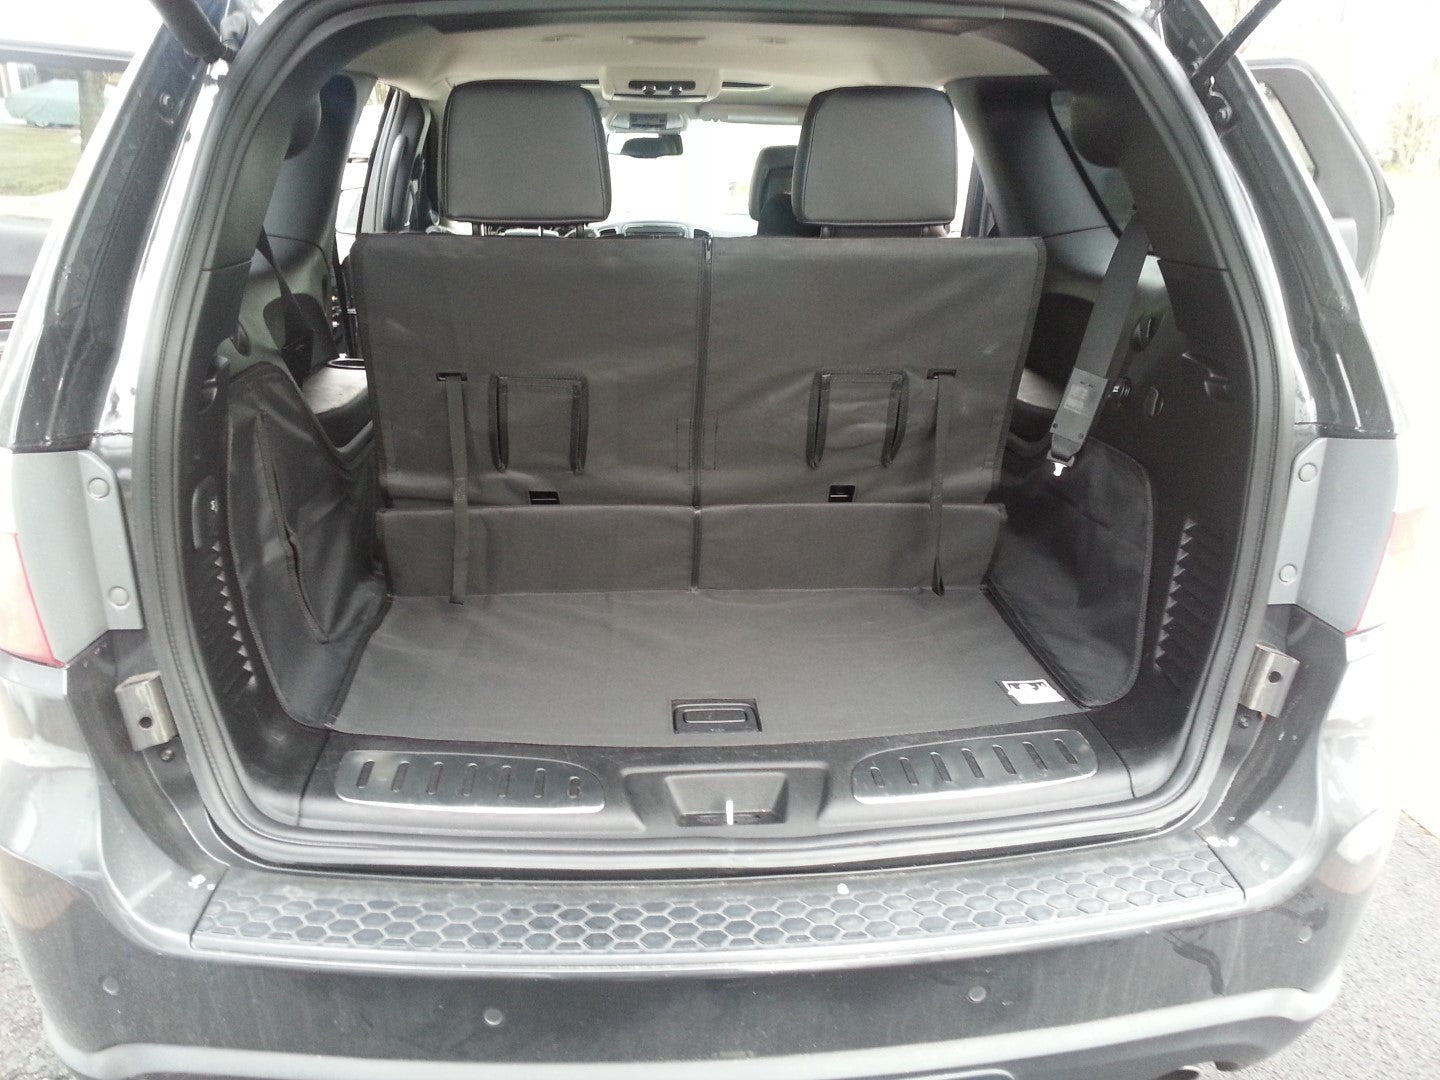 Dodge Durango Canvasback Cargo Liners 2013-2019  FREE SHIPPING